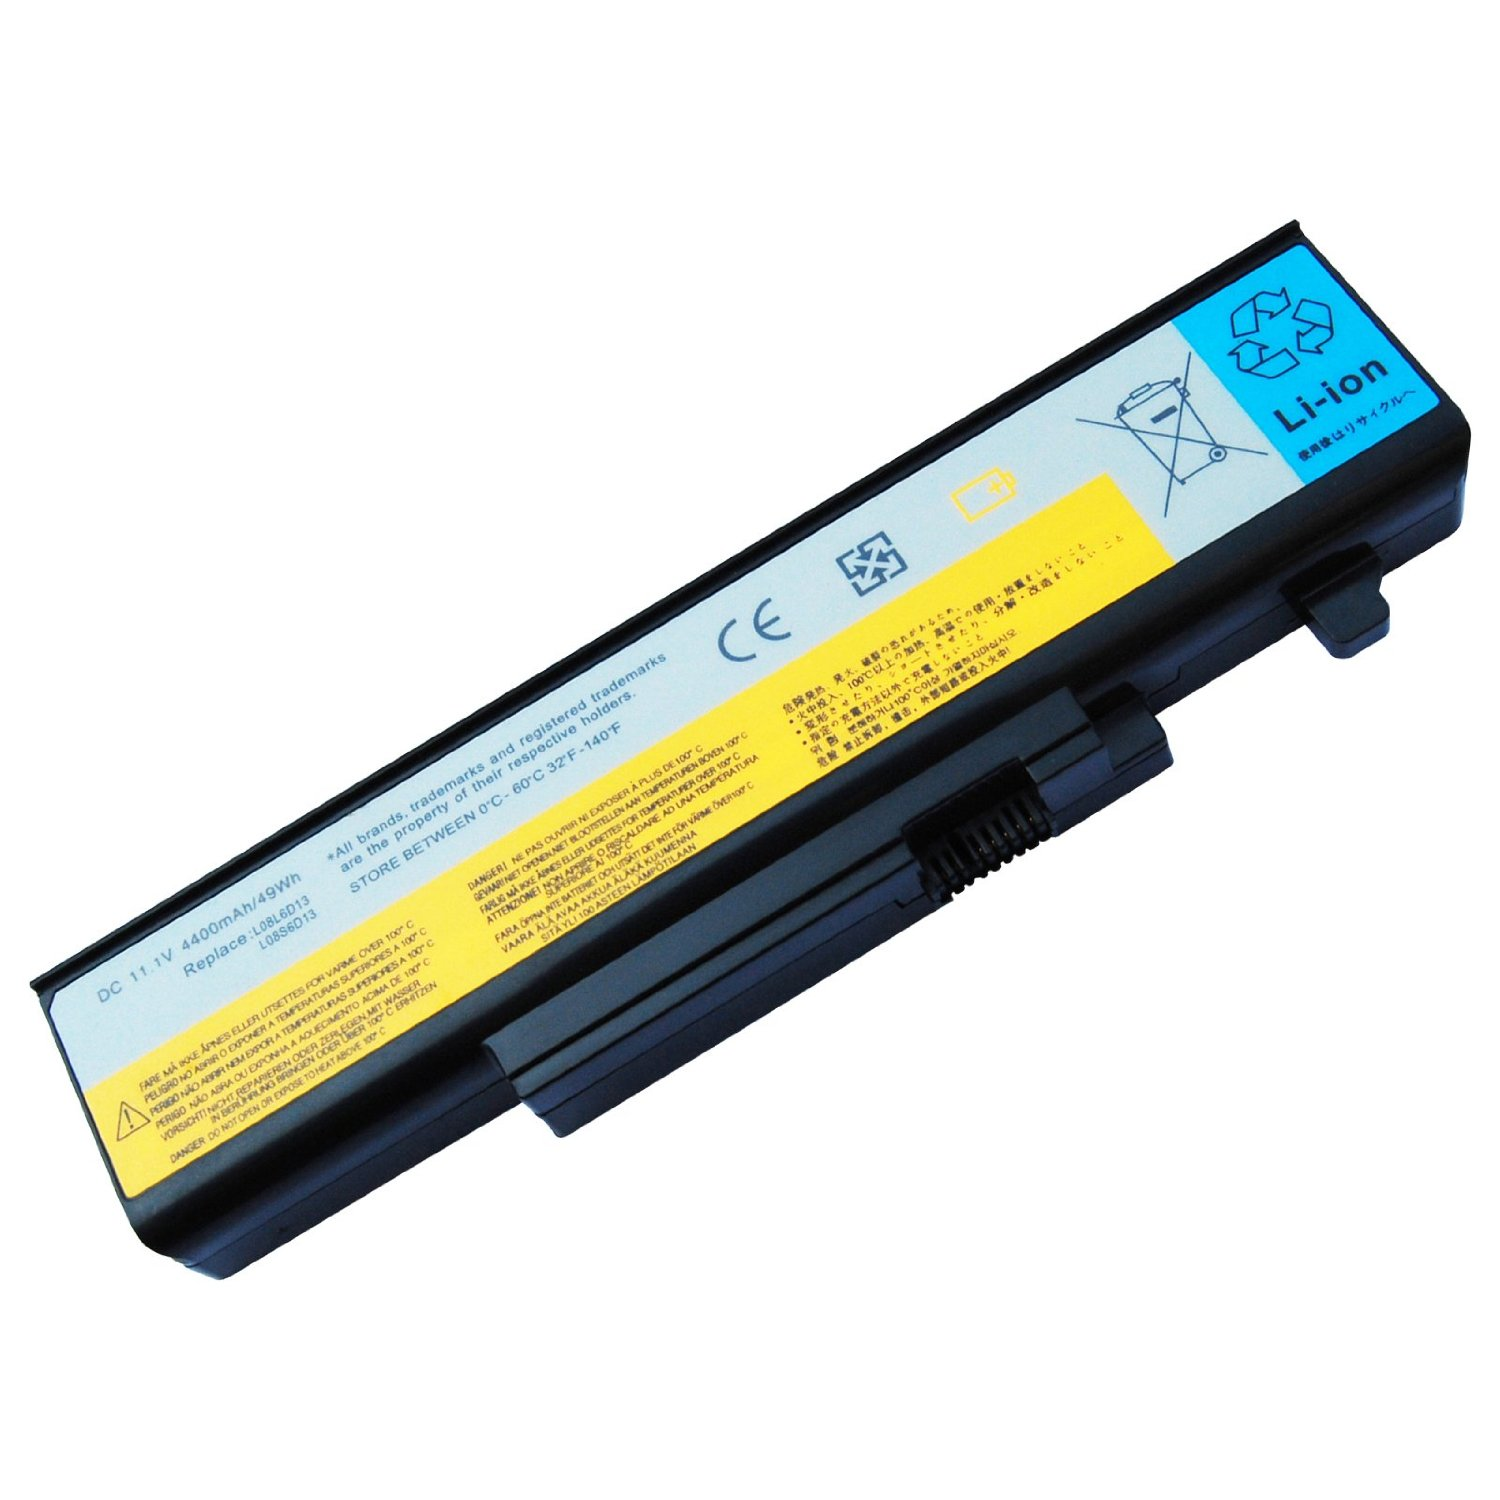 LENOVO-Y450 Y550: Laptop Battery 6-cell for LENOVO IdeaPad Y450G IdeaPad Y550 4186 IdeaPad Y550 IdeaPad Y550A Y550P